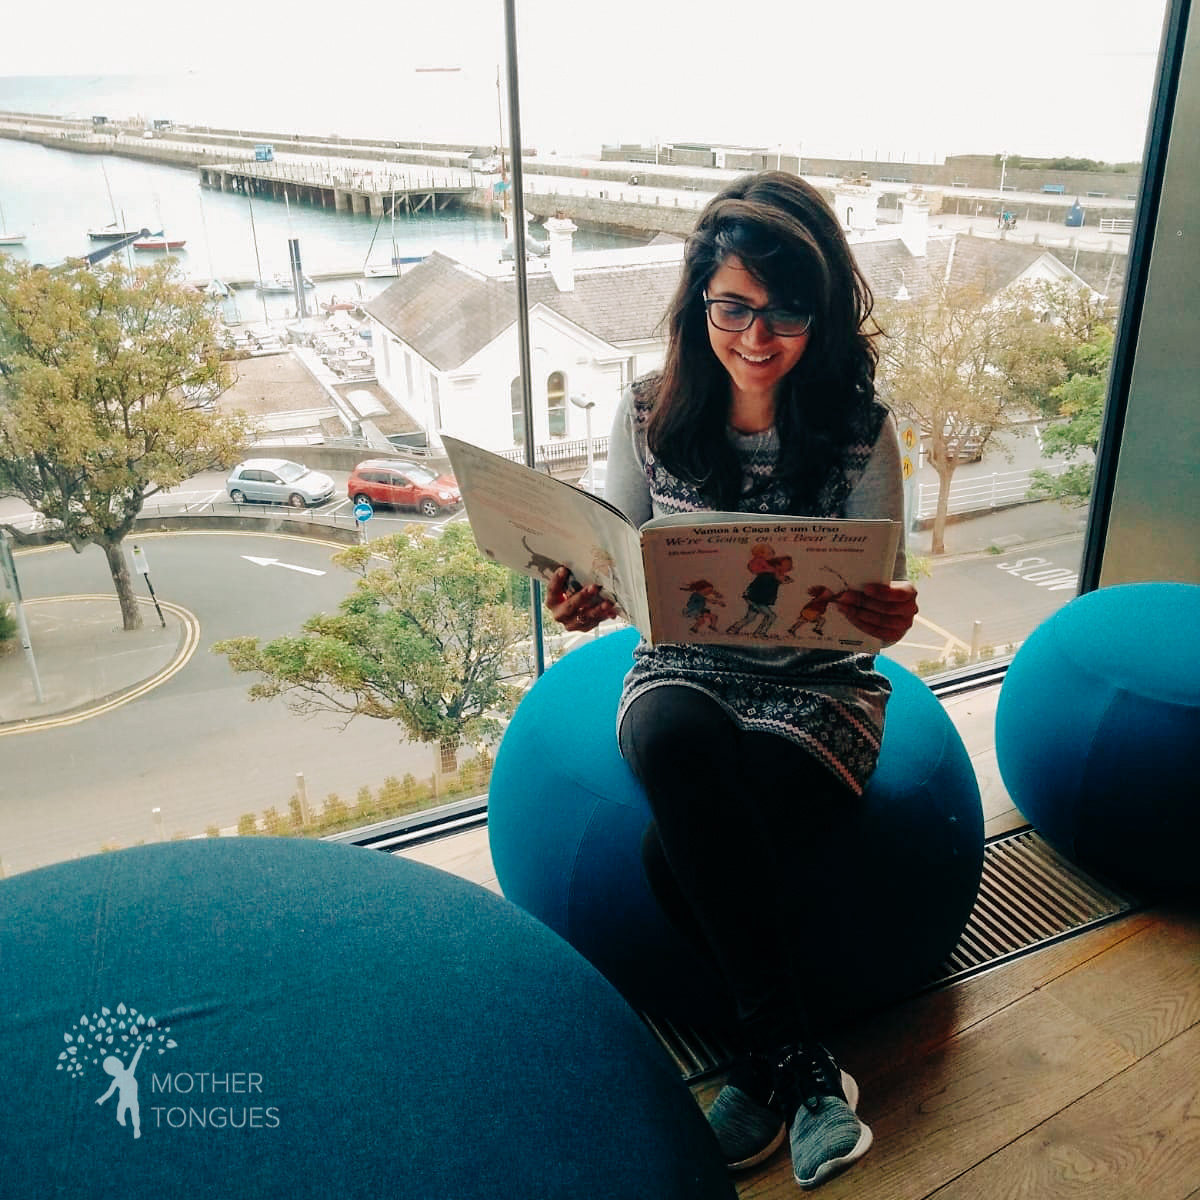 Multilingual storytelling at Dun Laoghaire